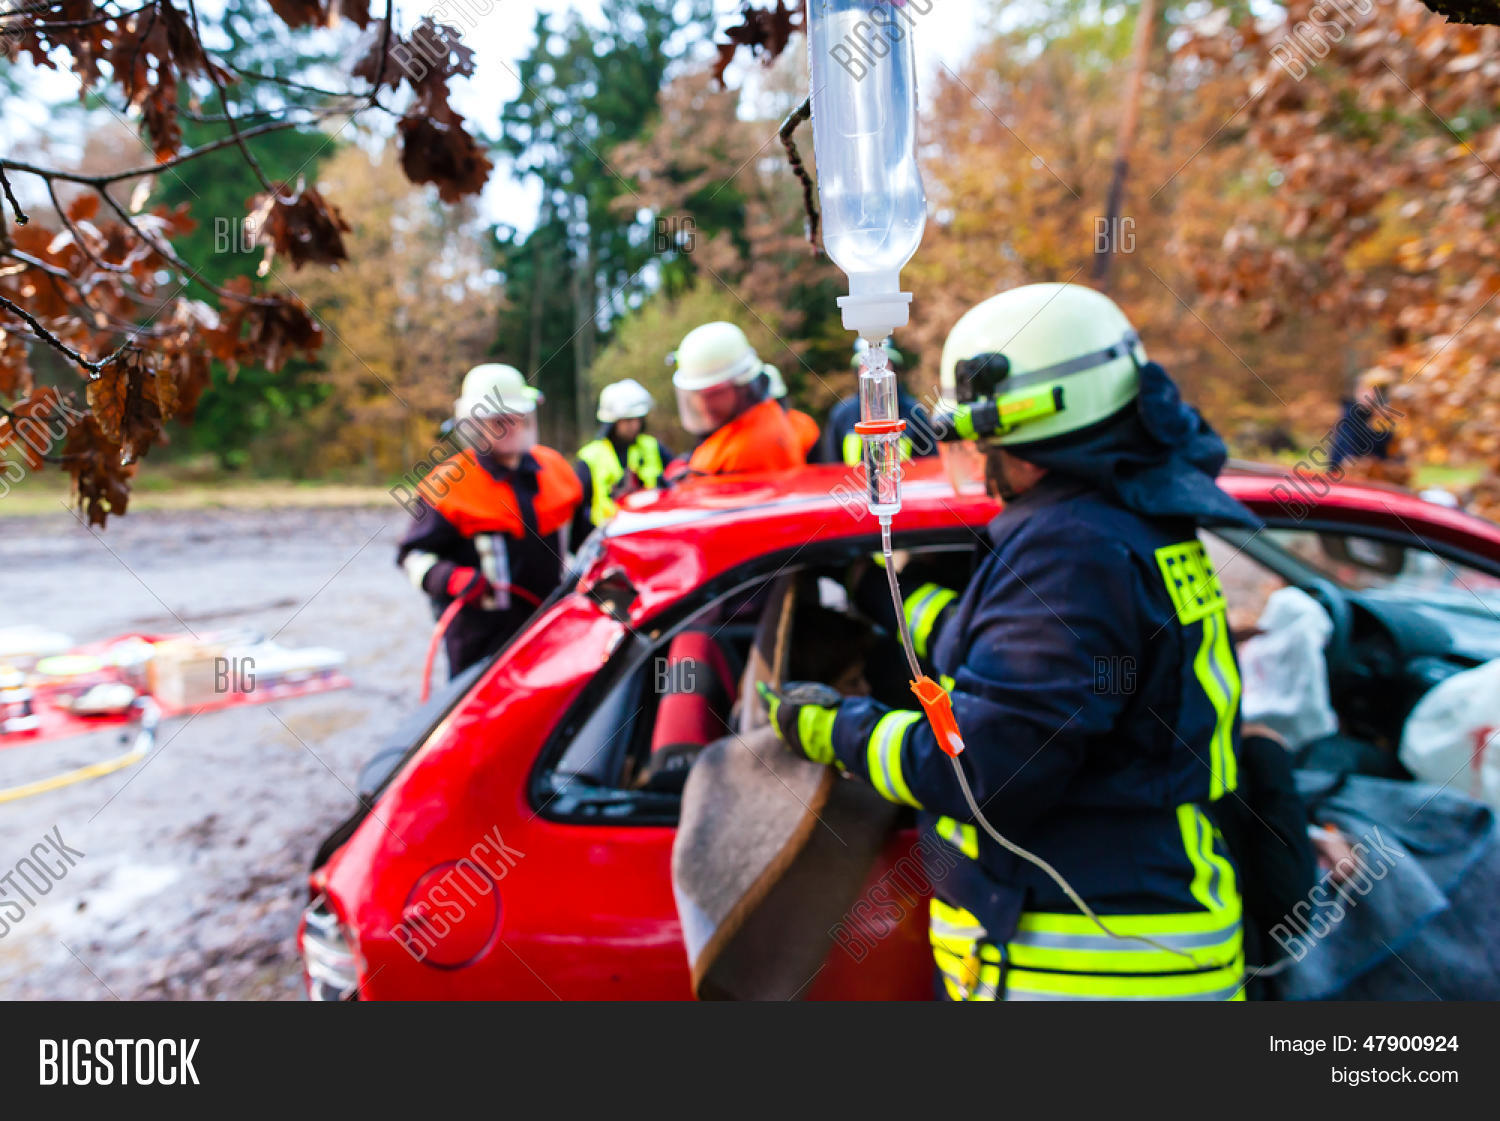 Accident - Fire Image & Photo (Free Trial)   Bigstock